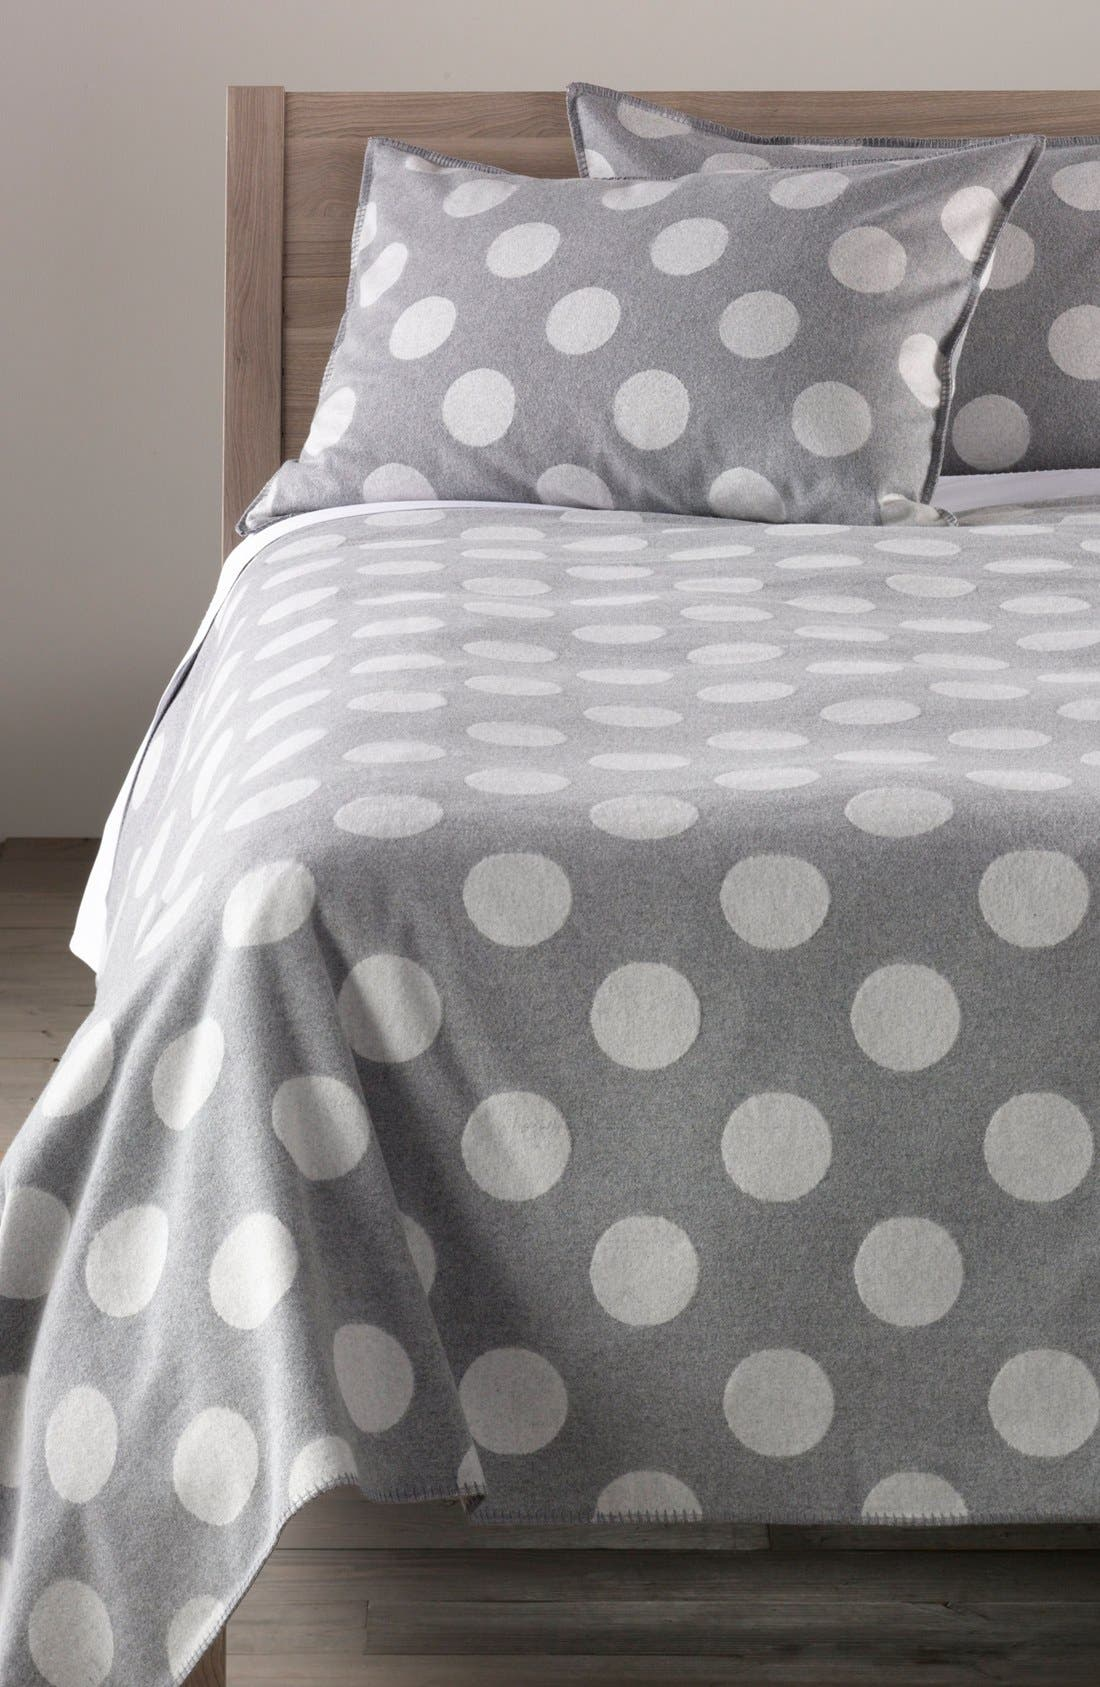 Main Image - Nordstrom at Home 'Dottie' Flannel Blanket